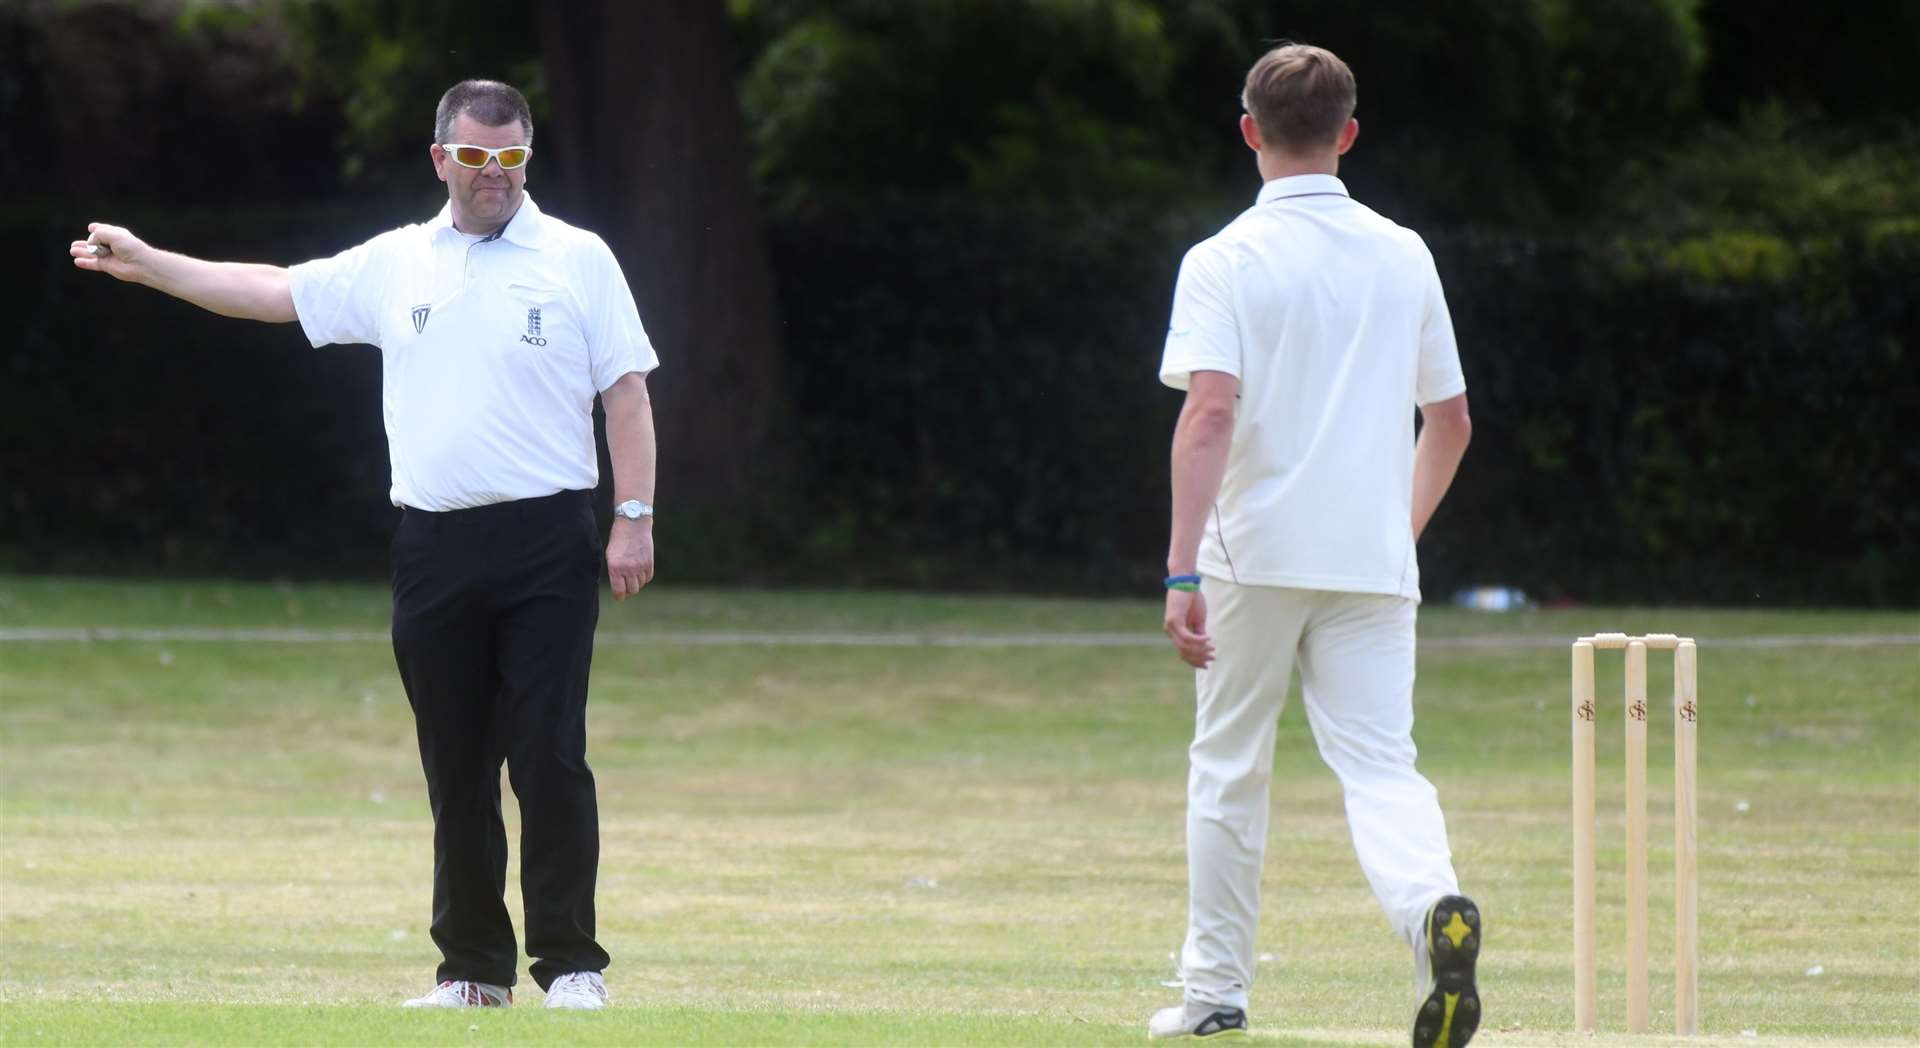 Long Sutton's James Baker was no balled after bowling out Peter Mitchell.